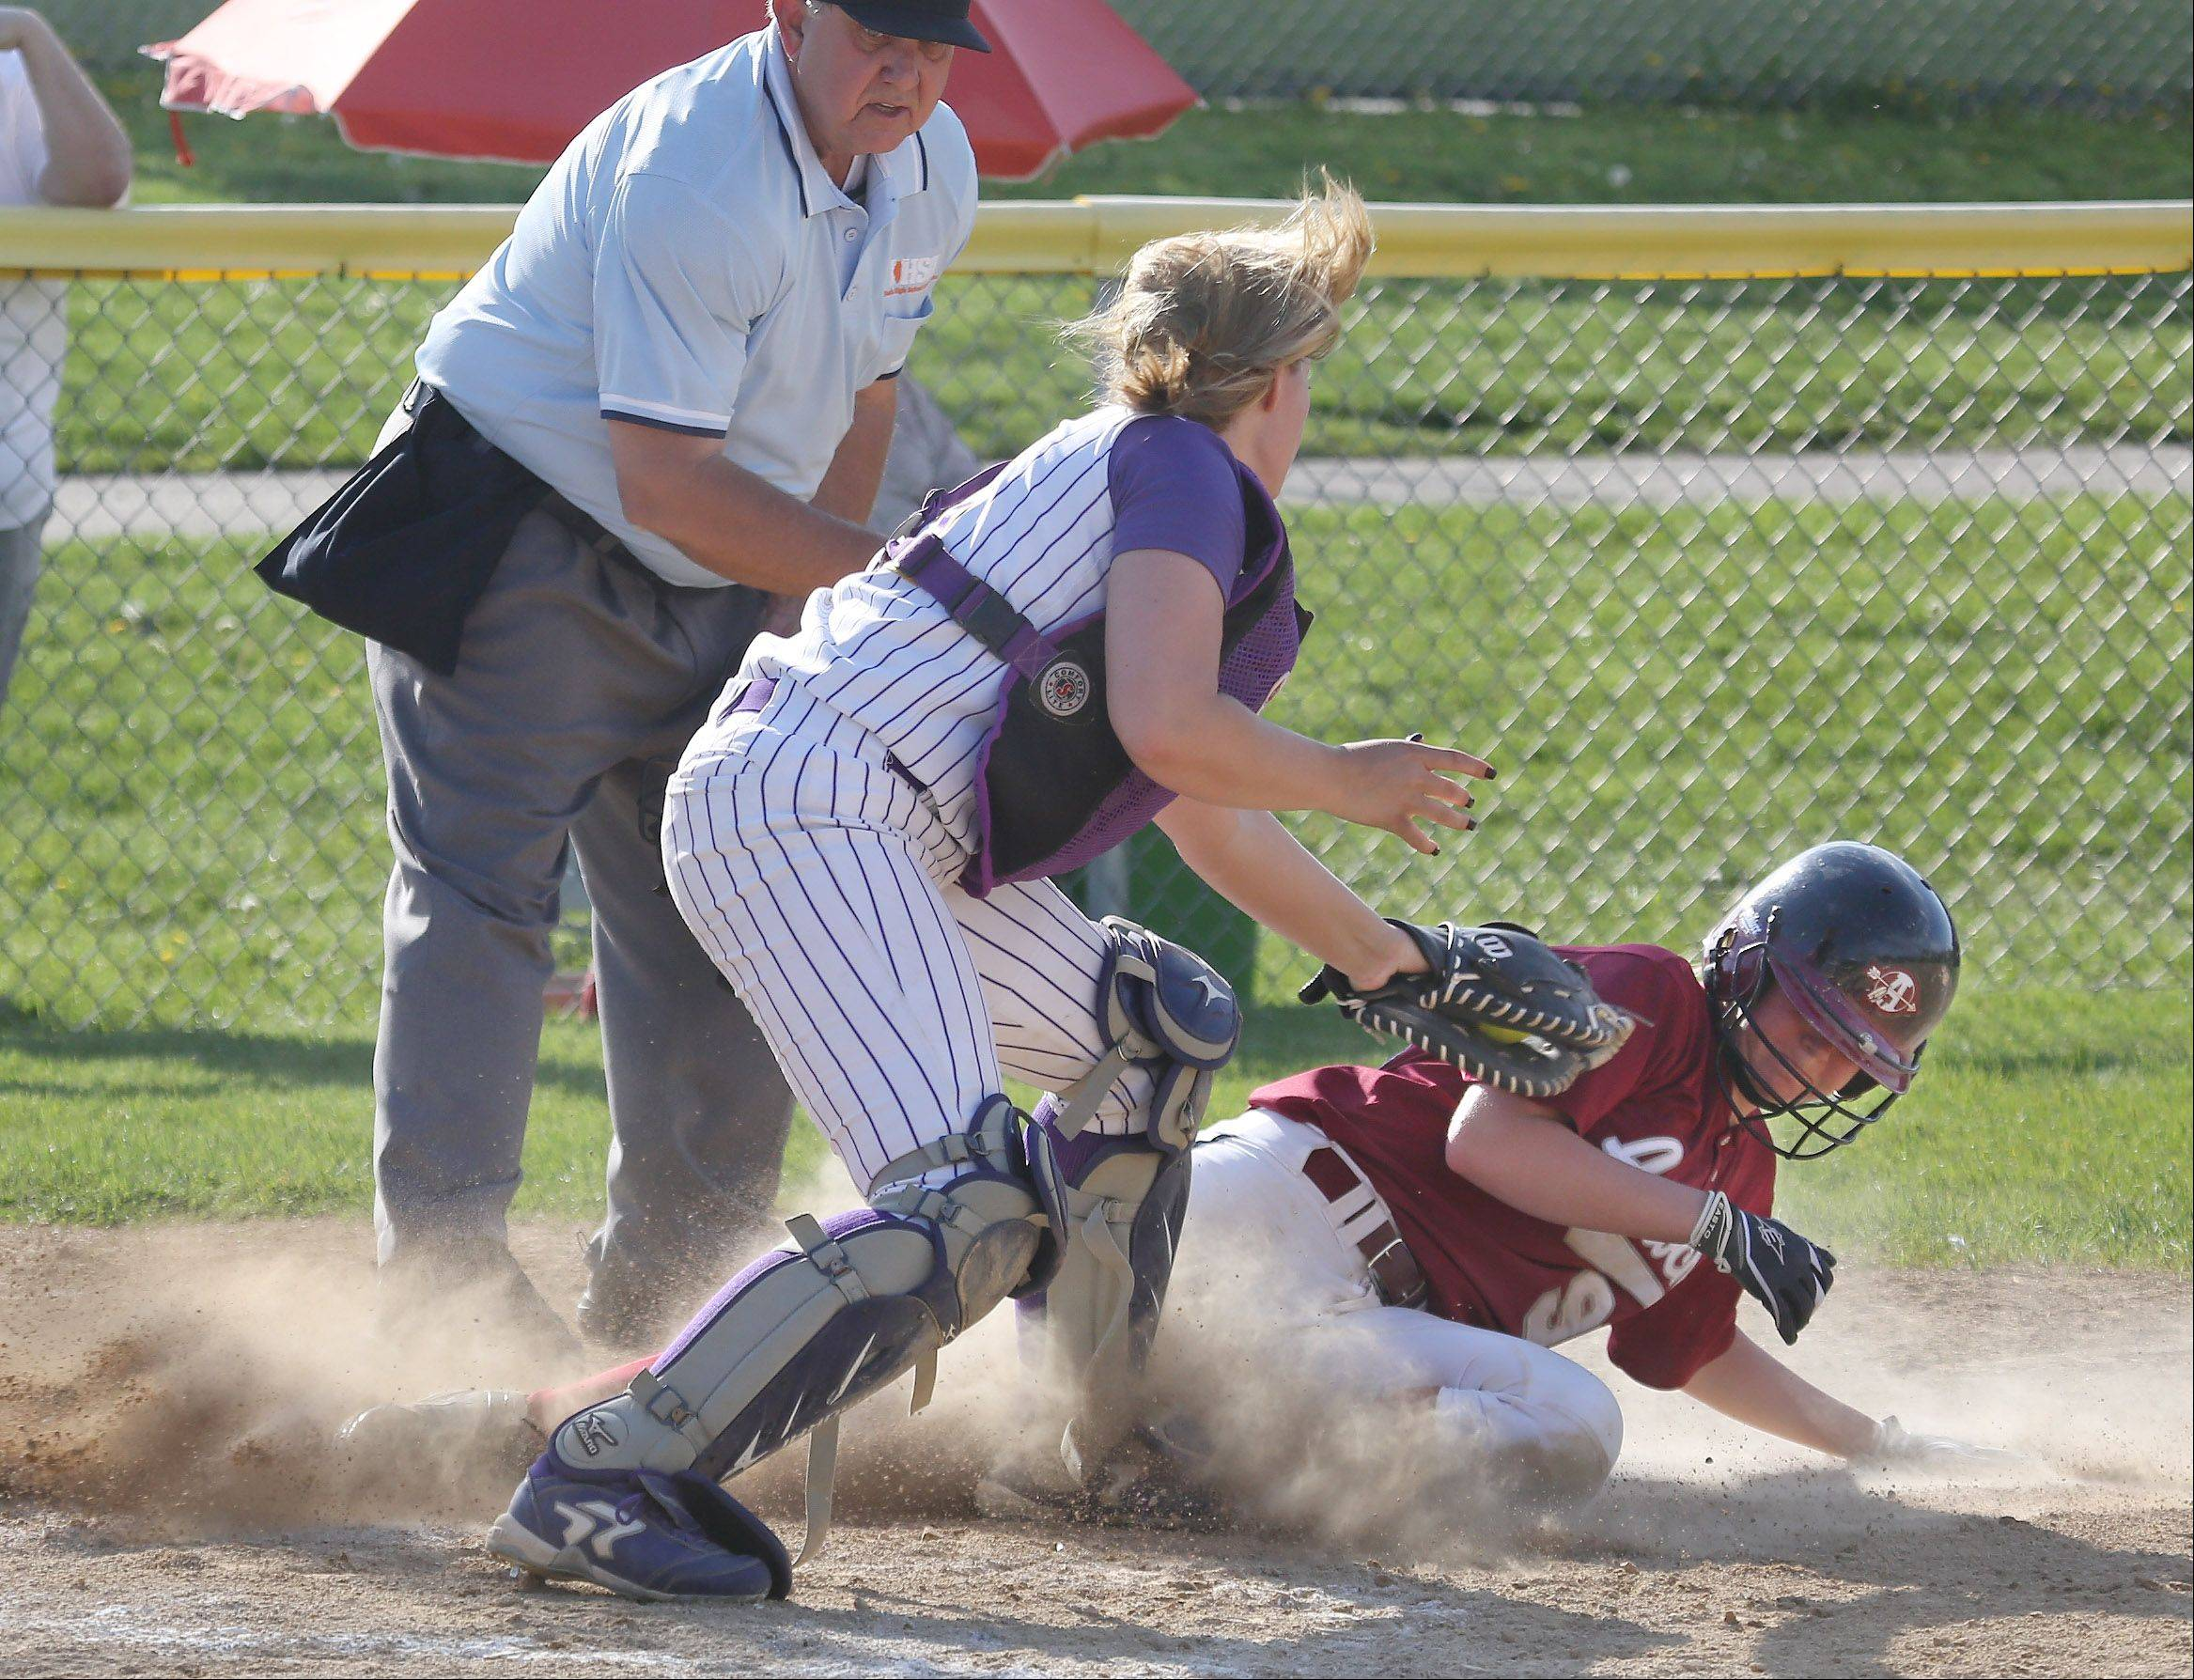 Antioch runner Jessica Tyrell slides safely into home under the tag of Wauconda catcher Megan Luchowski at Wauconda on Tuesday.